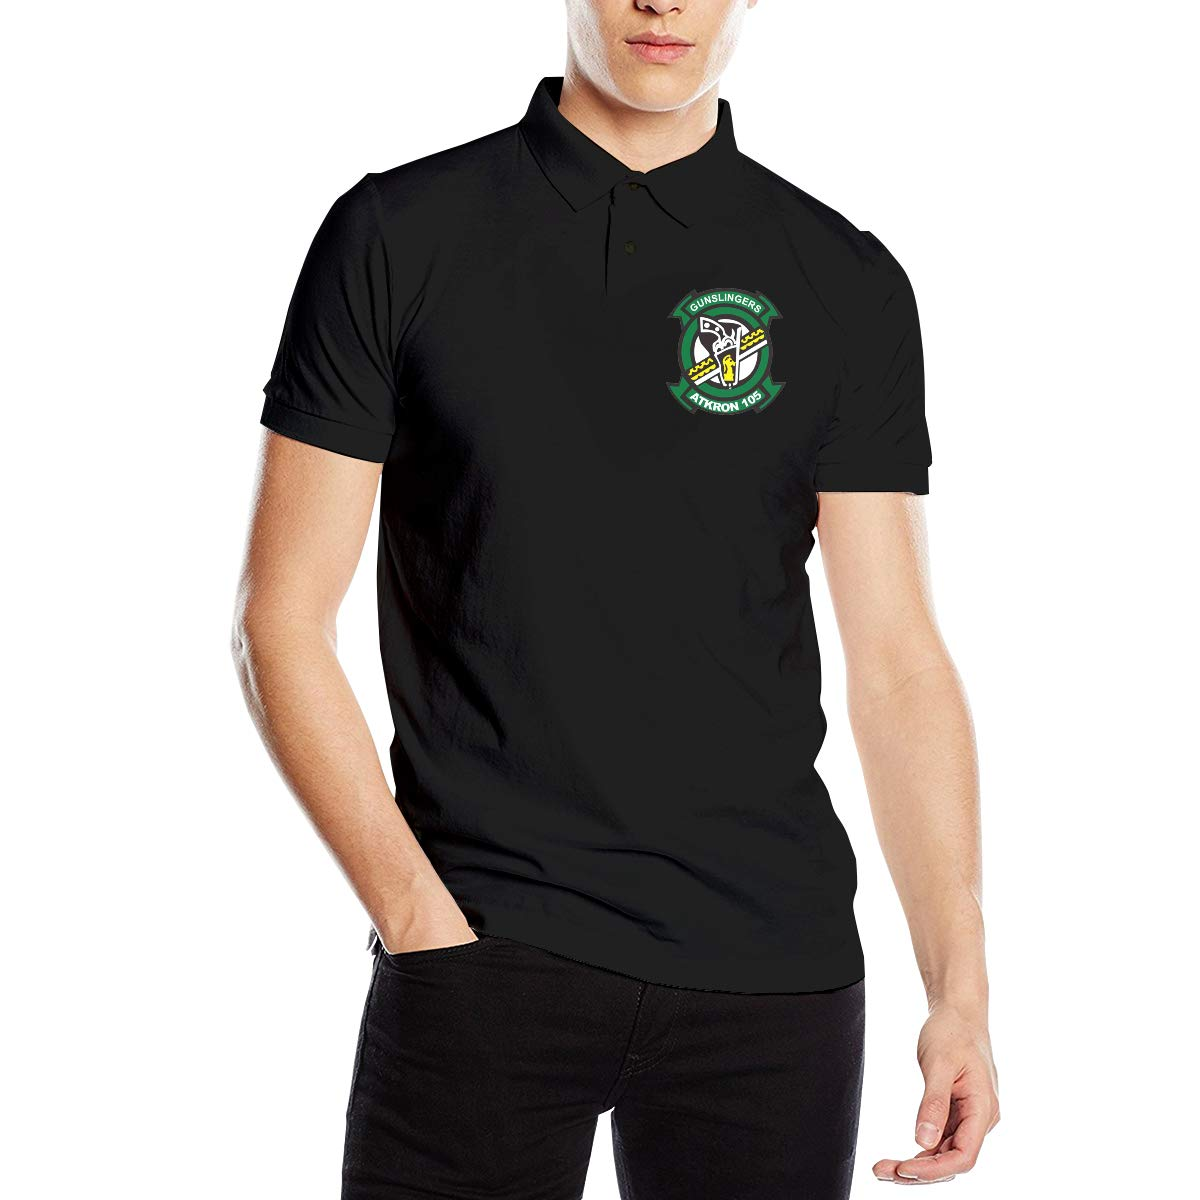 You Know And Good VFA-105 ATKRON-105 Gunslingers Patch Mens Regular-Fit Cotton Polo Shirt Short Sleeve